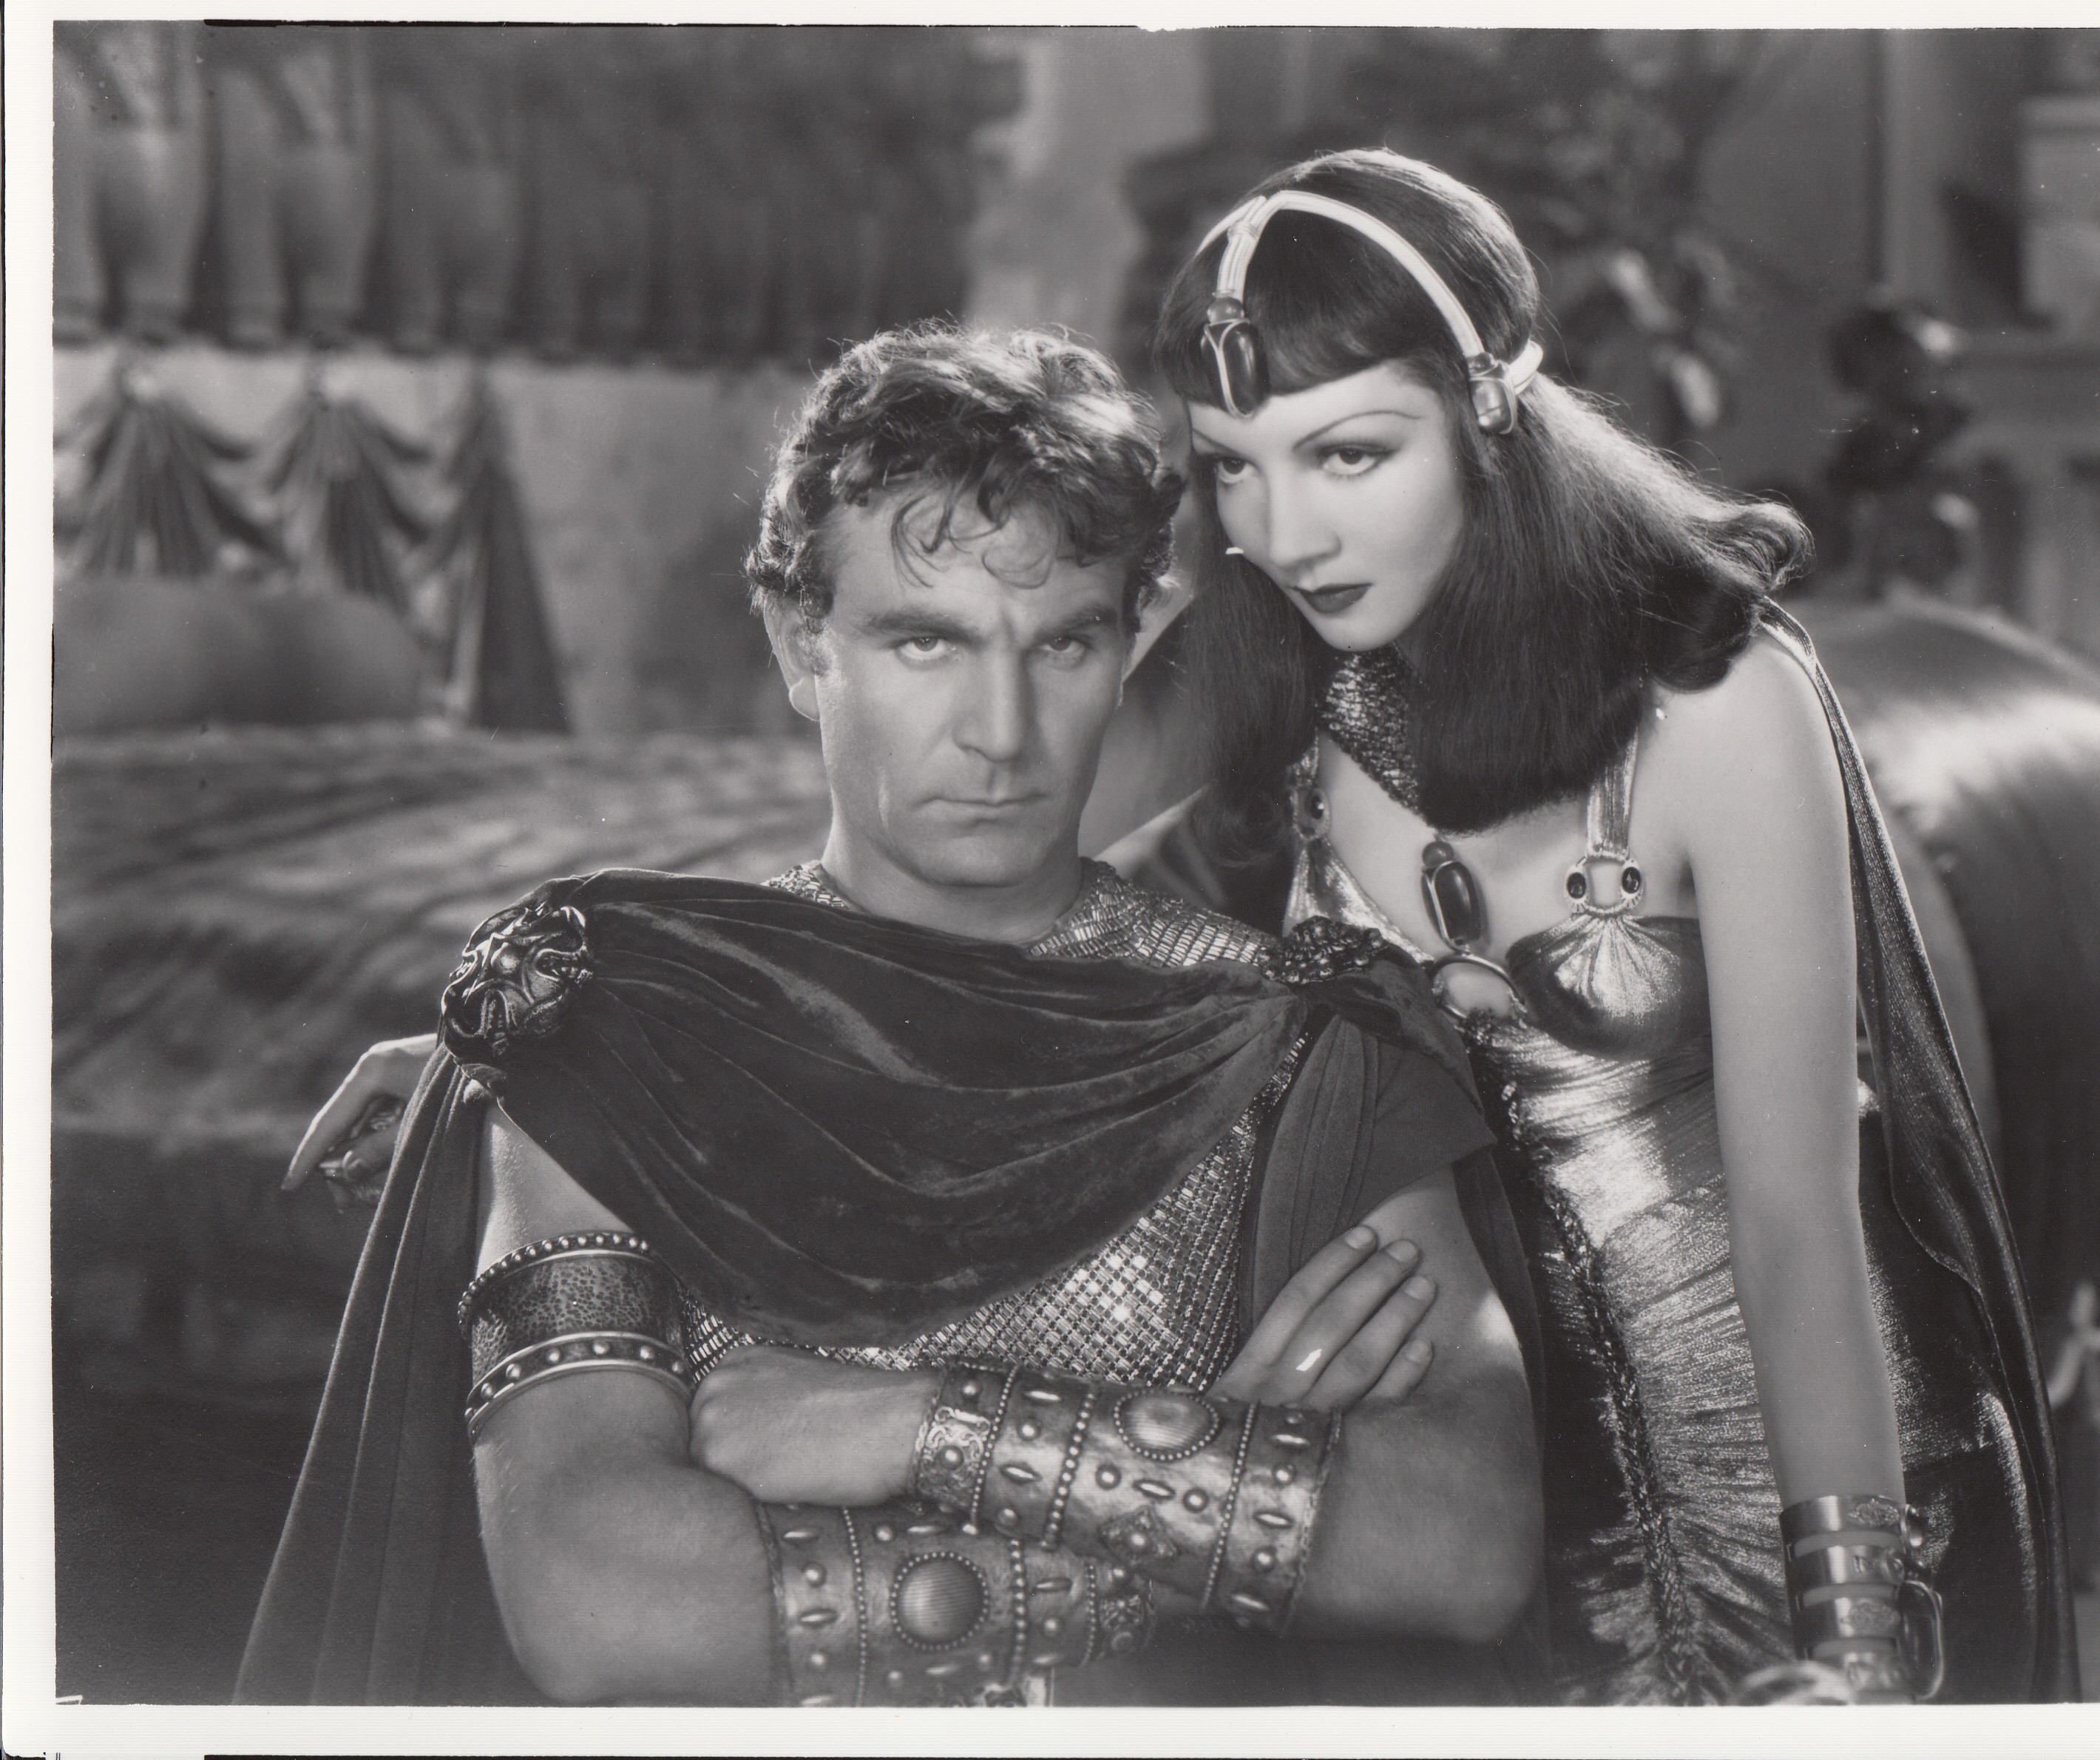 A still from the Cecille B. DeMille Collection of Special Collections shows Claudette Colbert as Cleopatra and Henry Wilcoxon. Courtesy Norman Gillespie.